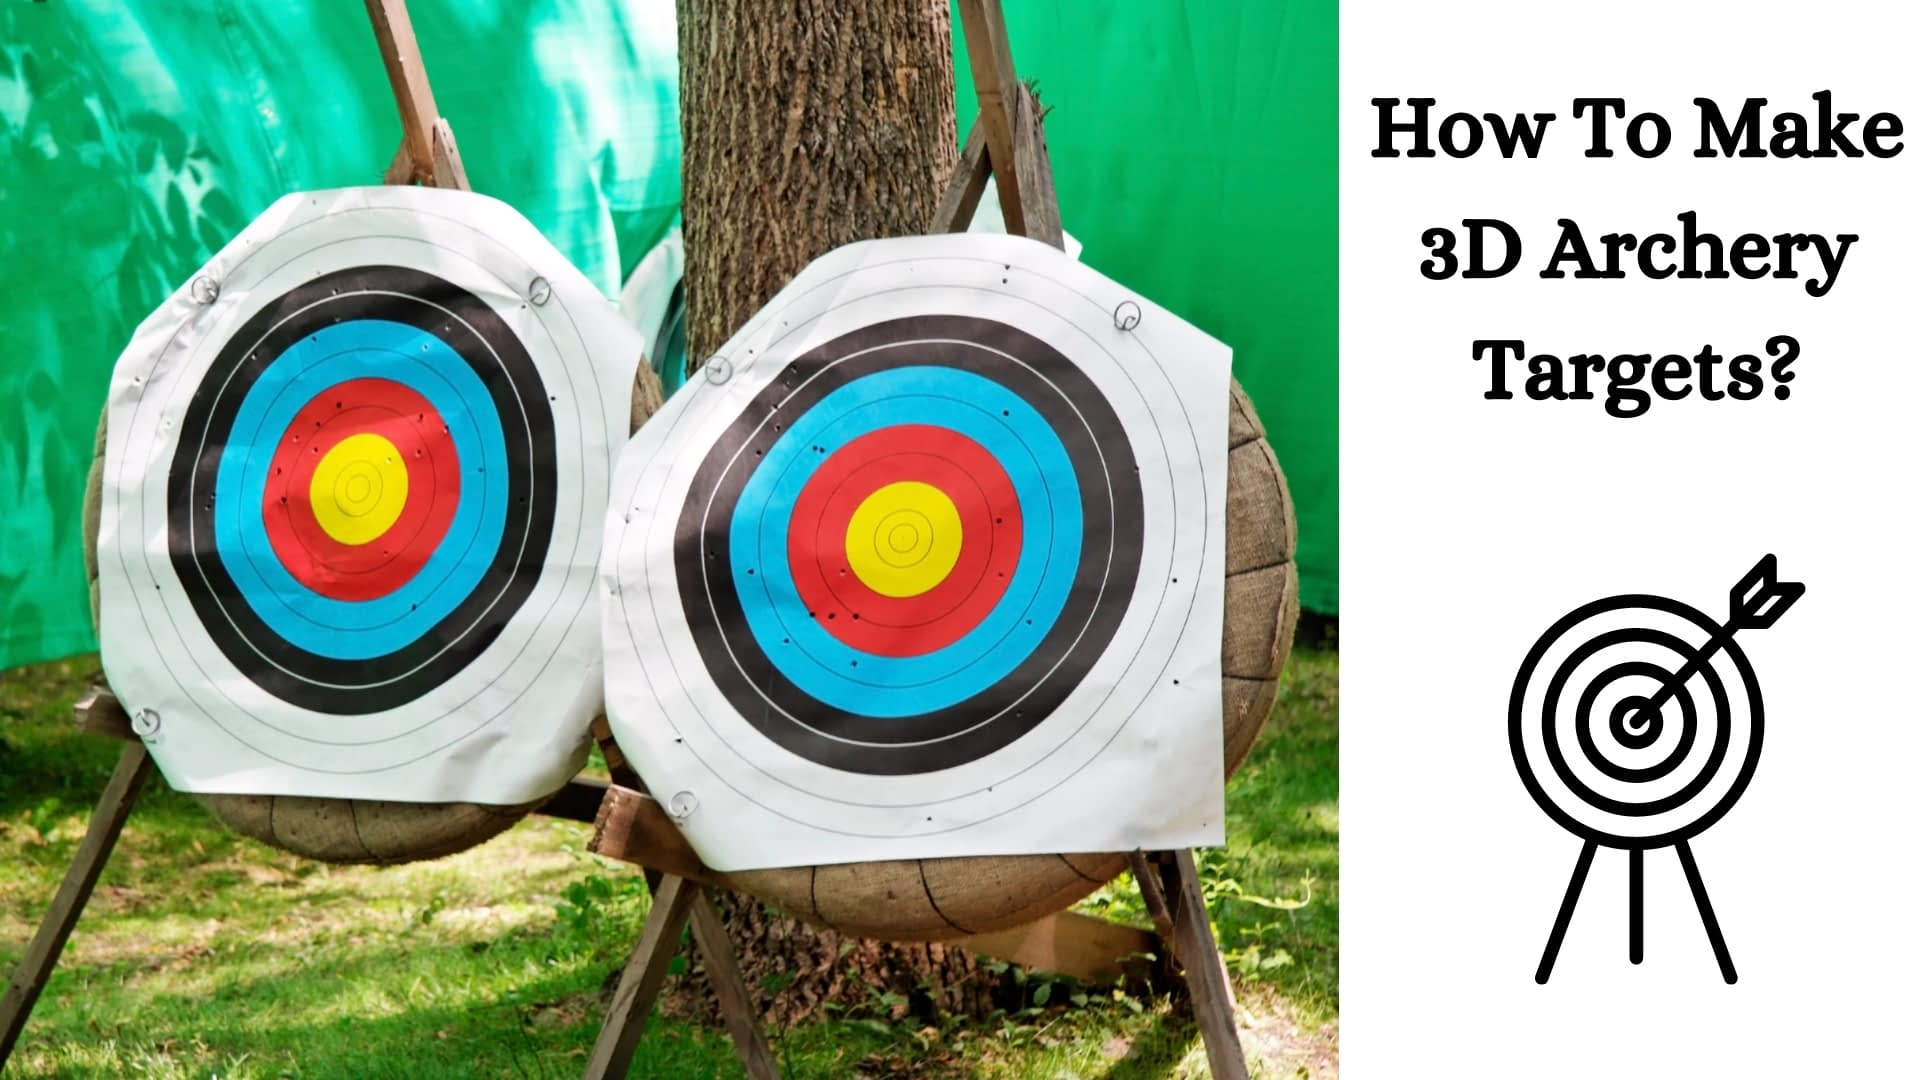 How To Make 3D Archery Targets